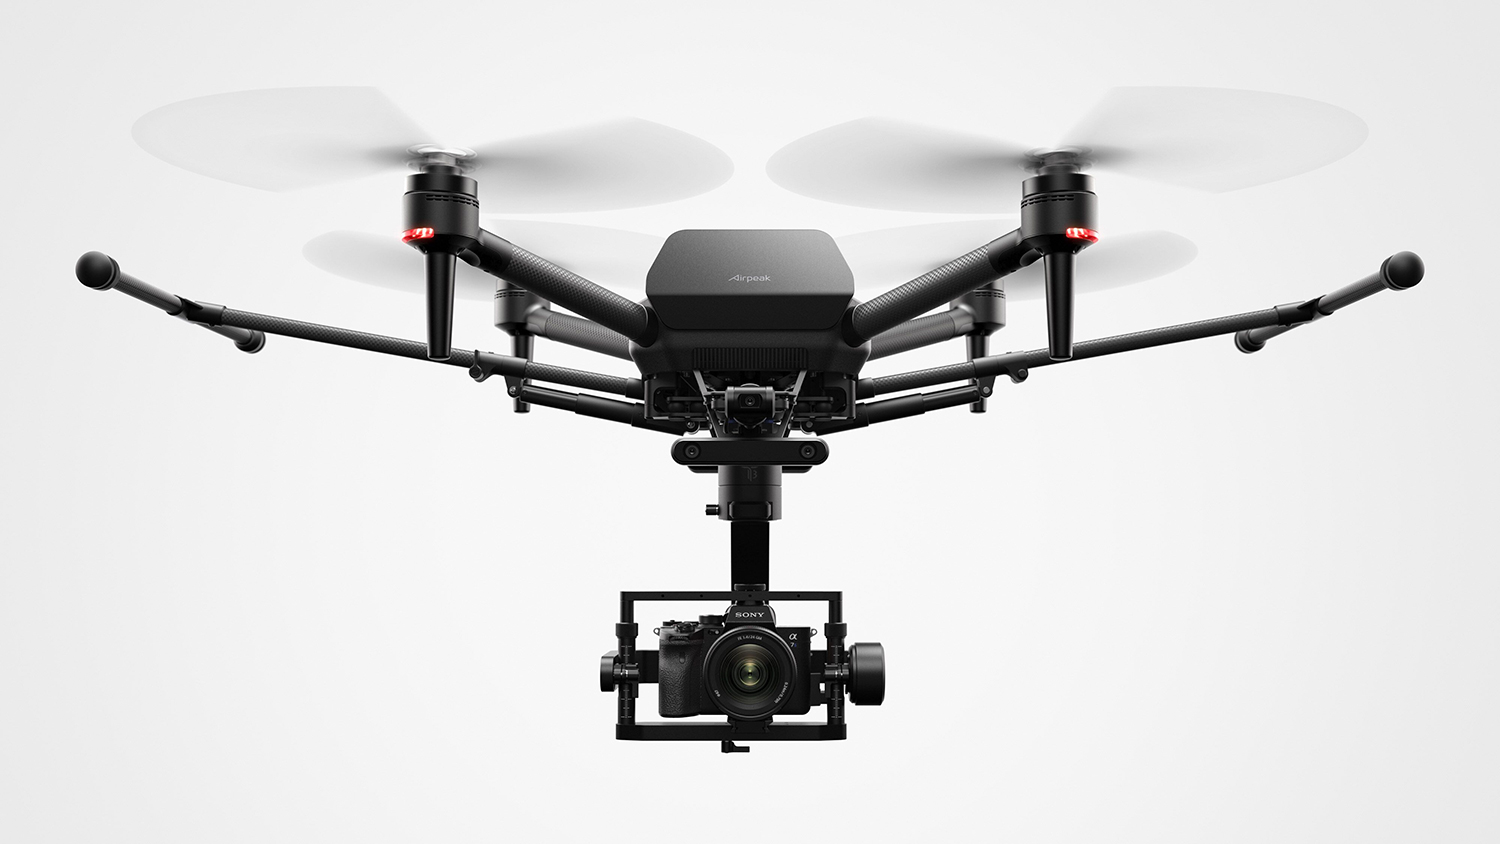 Product shot of Sony Airpeak drone